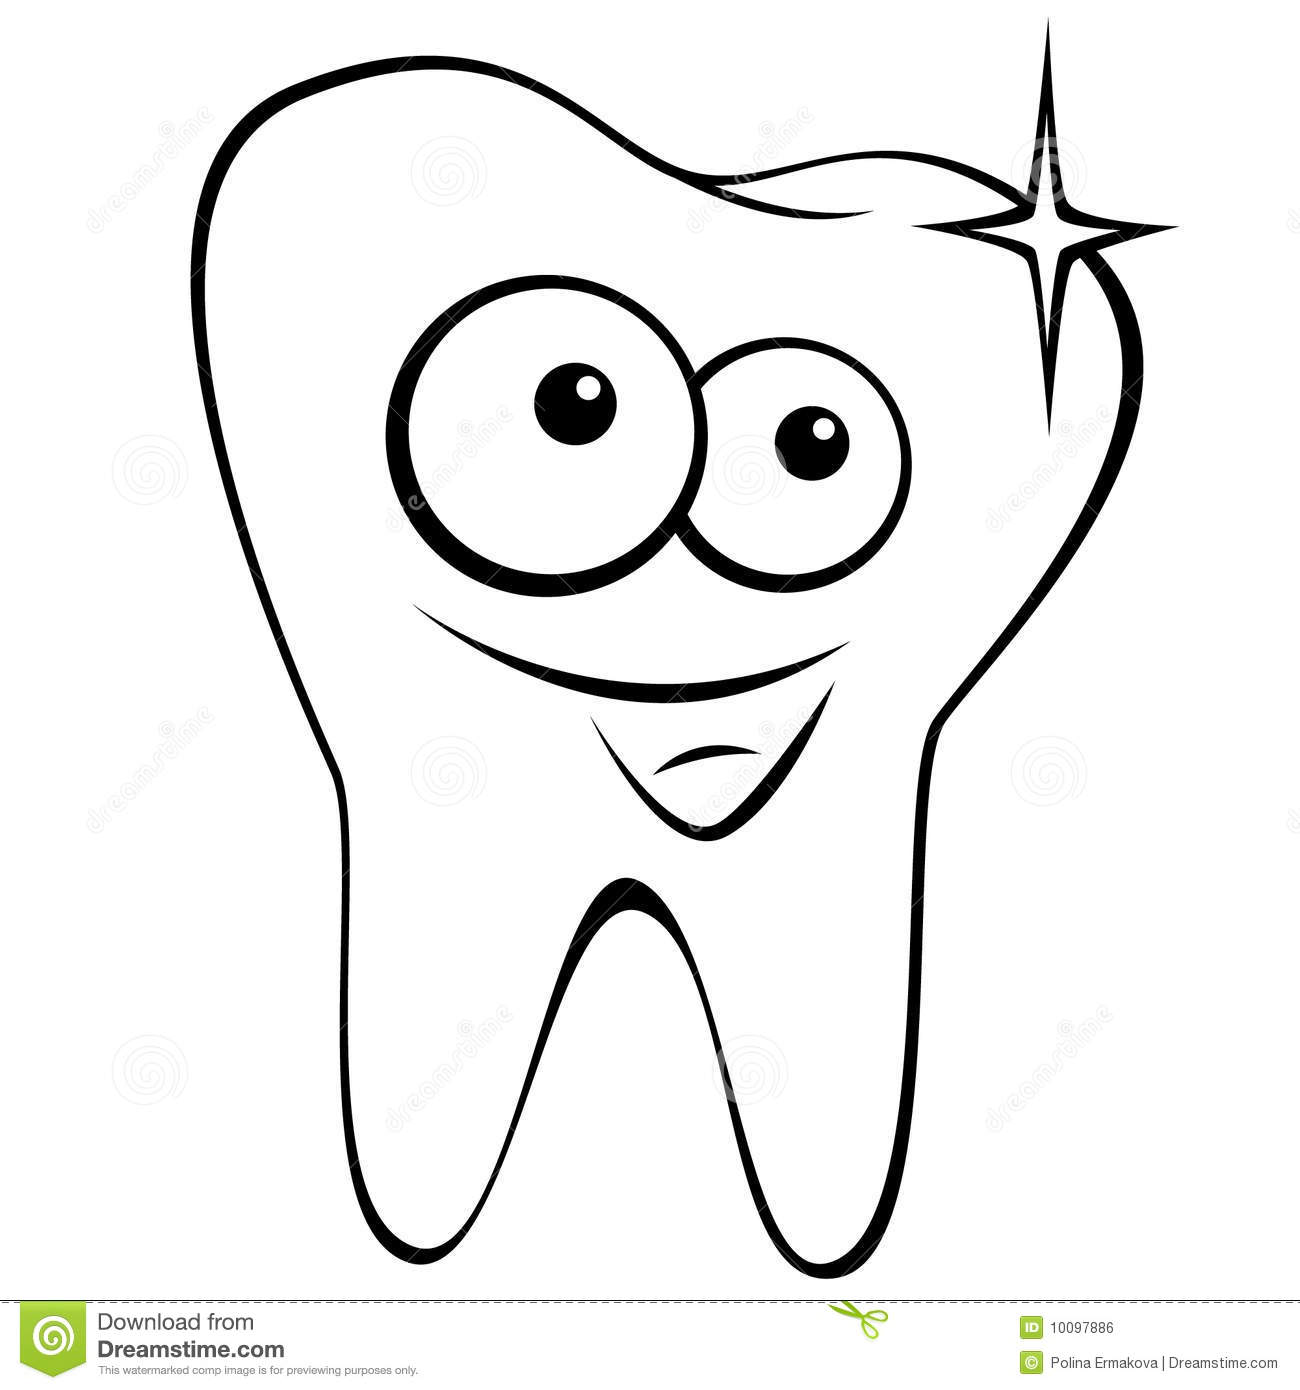 happy tooth royalty free stock image image 10097886 money bags clip art badge money bags clip art free images